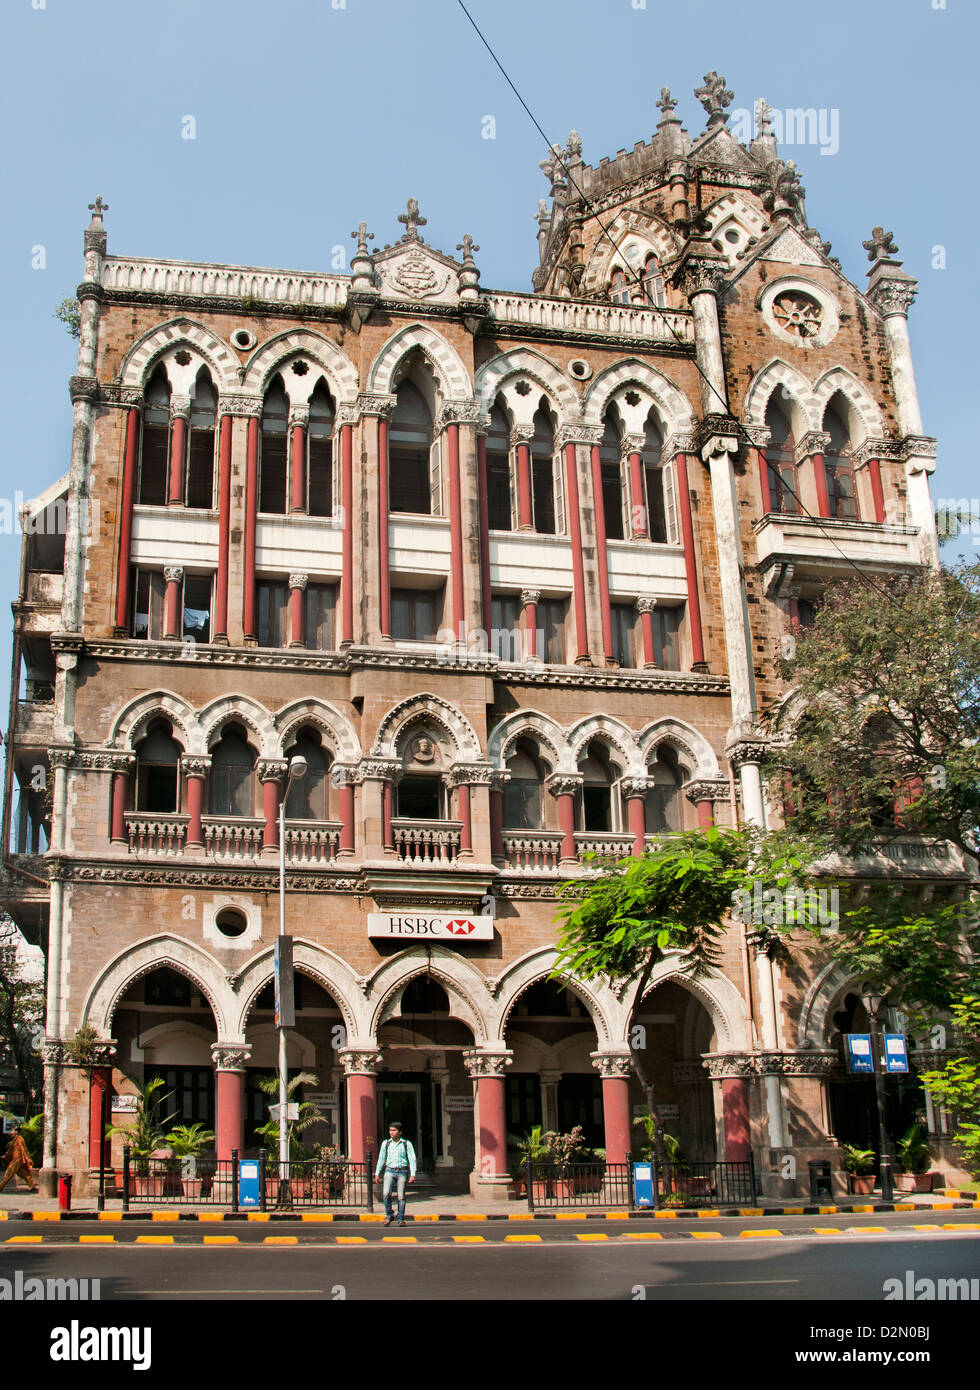 HSBC Bank D N Road Mumbai Fort ( ) de Bombay, India Imagen De Stock